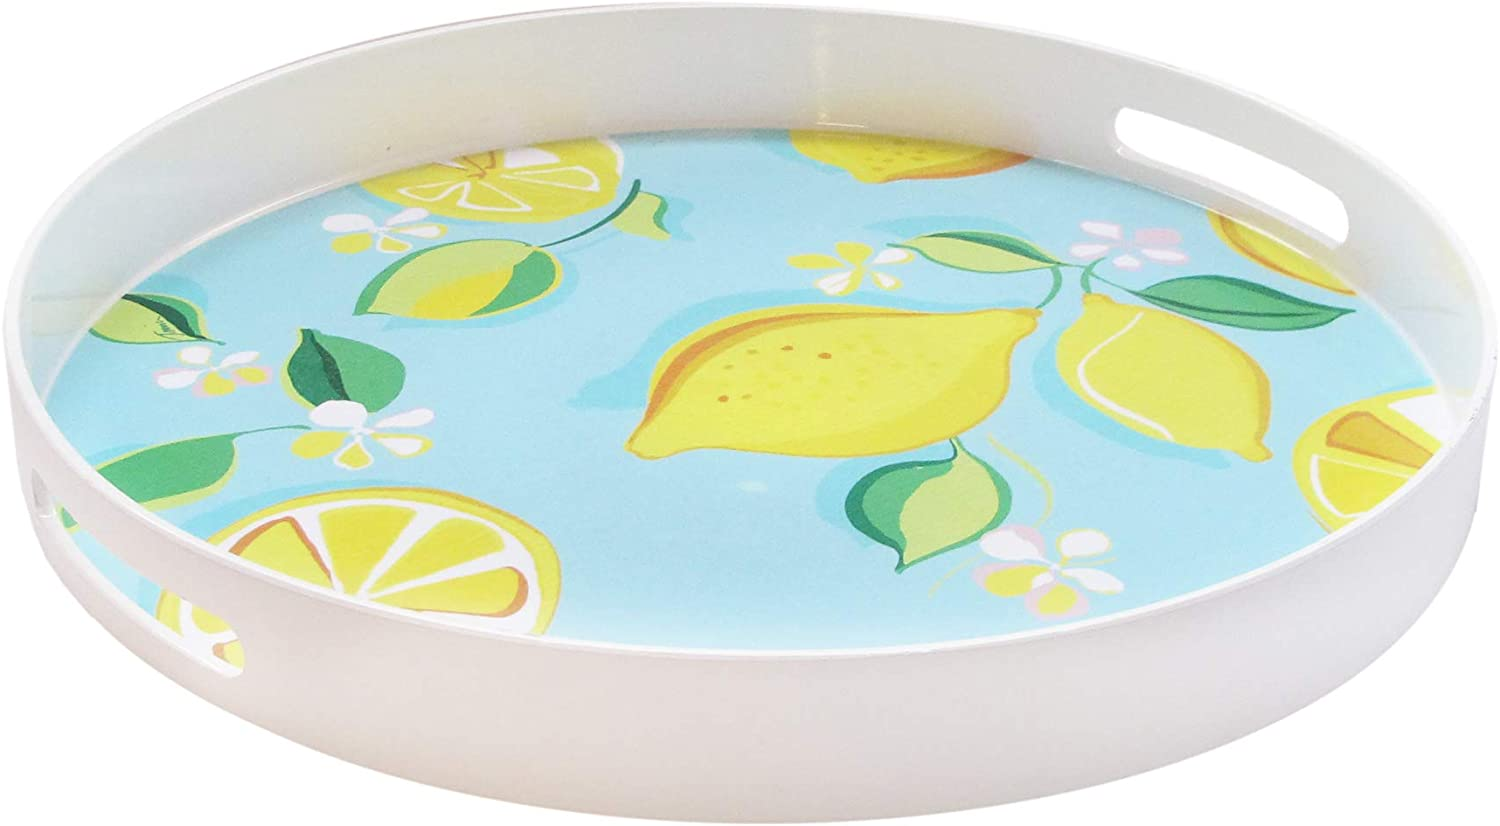 Trina Turk Round Serving Tray- Direct stock discount Indoor Max 80% OFF for Home Platter Outdoor